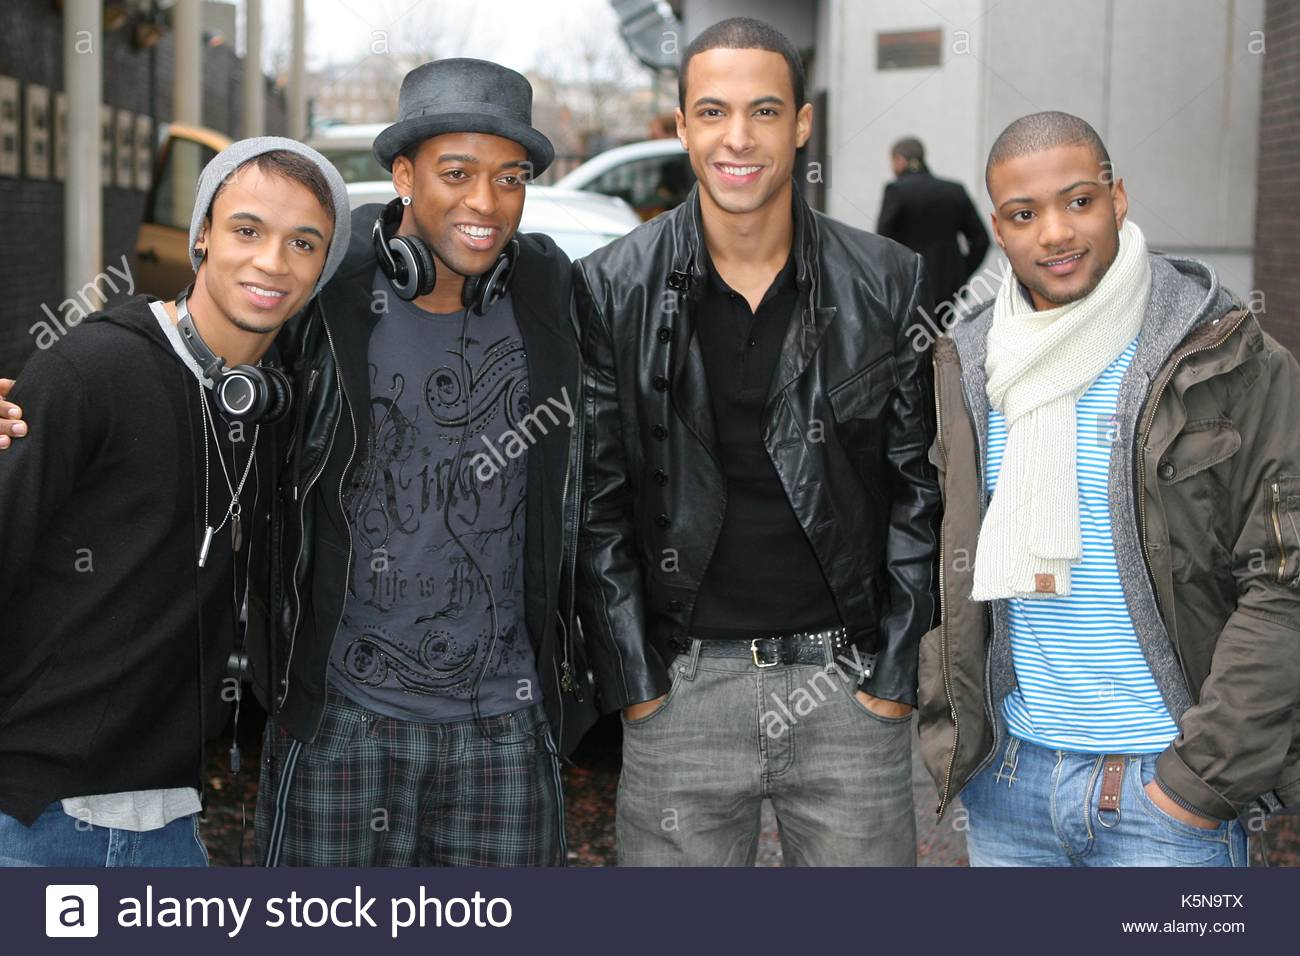 58eff45ec Boy Band JLS leaving GMTV Studios after appearing on the show to celebrate  Lorraine Kelly's 50th birthday. The boys arrived very early at the studio in  ...